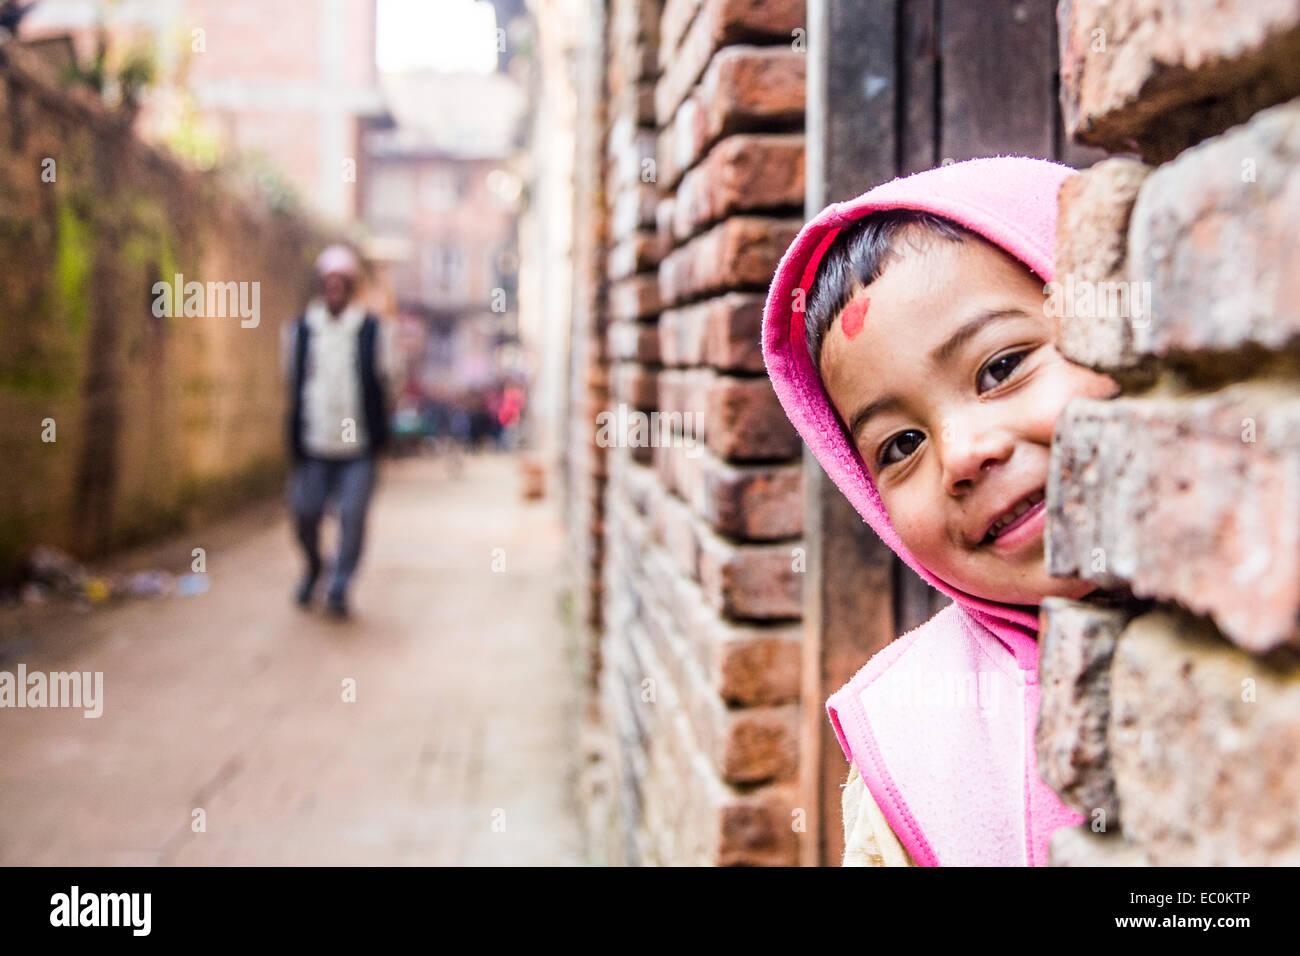 Young Napali boy in a doorway in Bhaktapur, Nepal - Stock Image